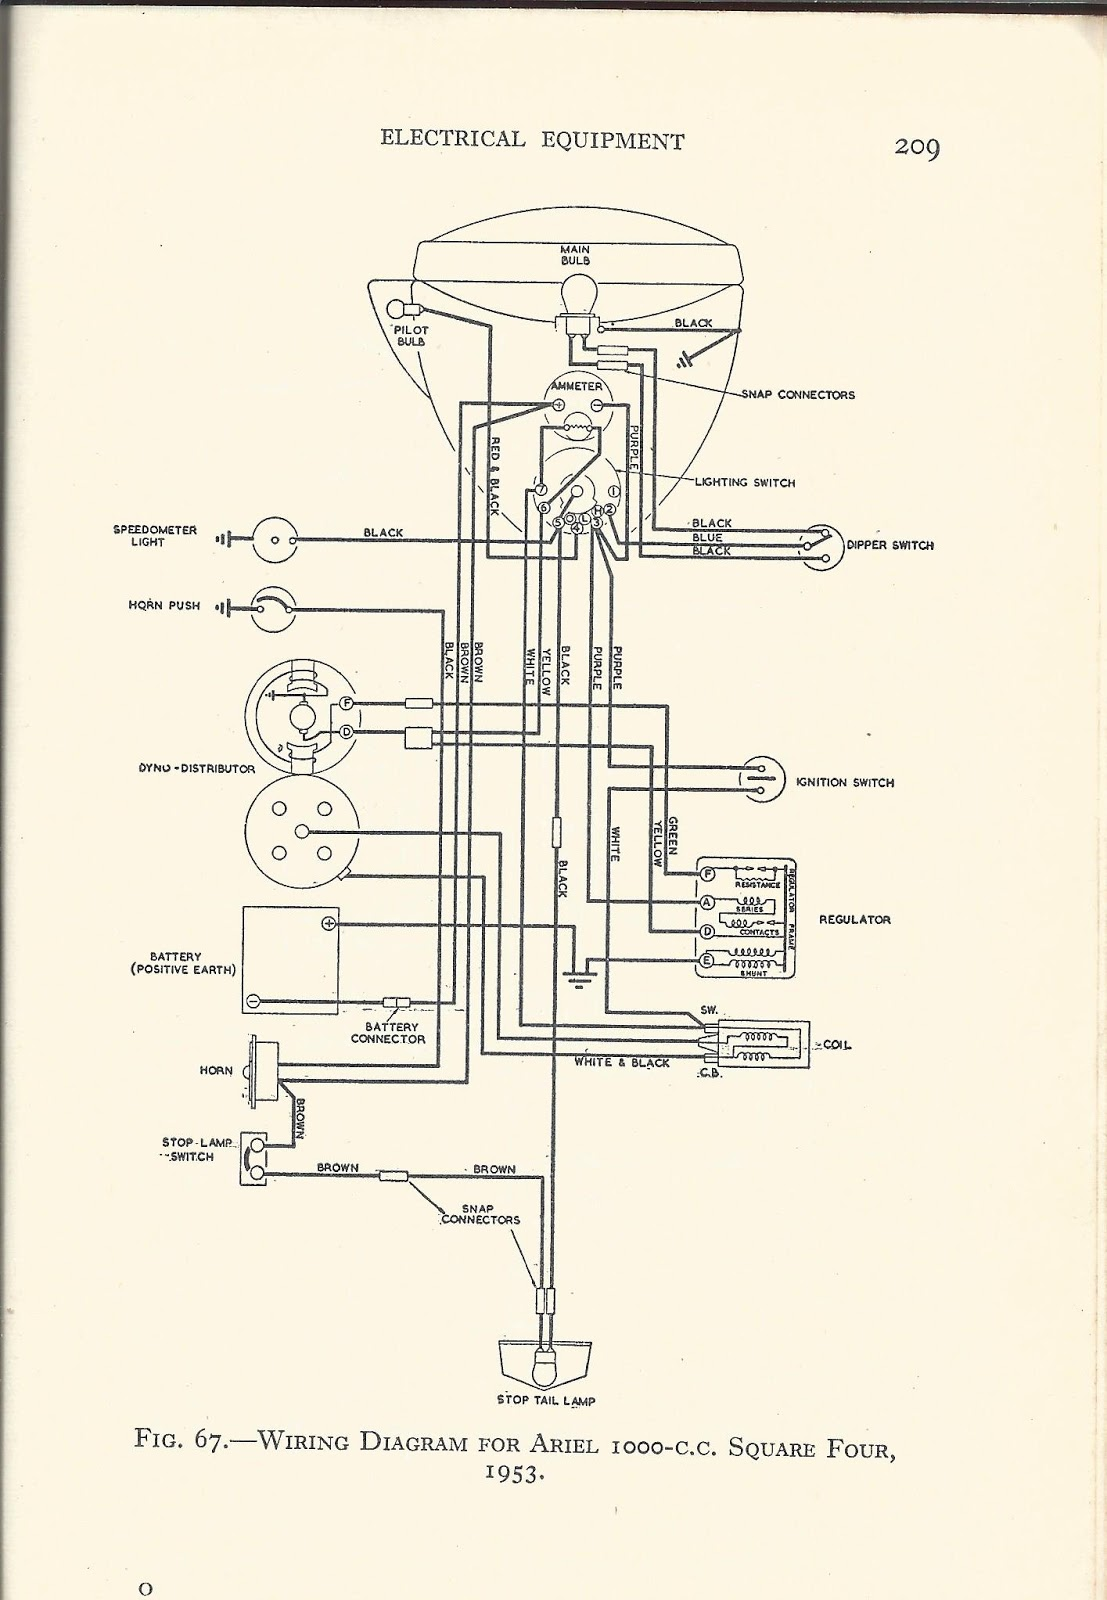 1953 Wiring Diagram